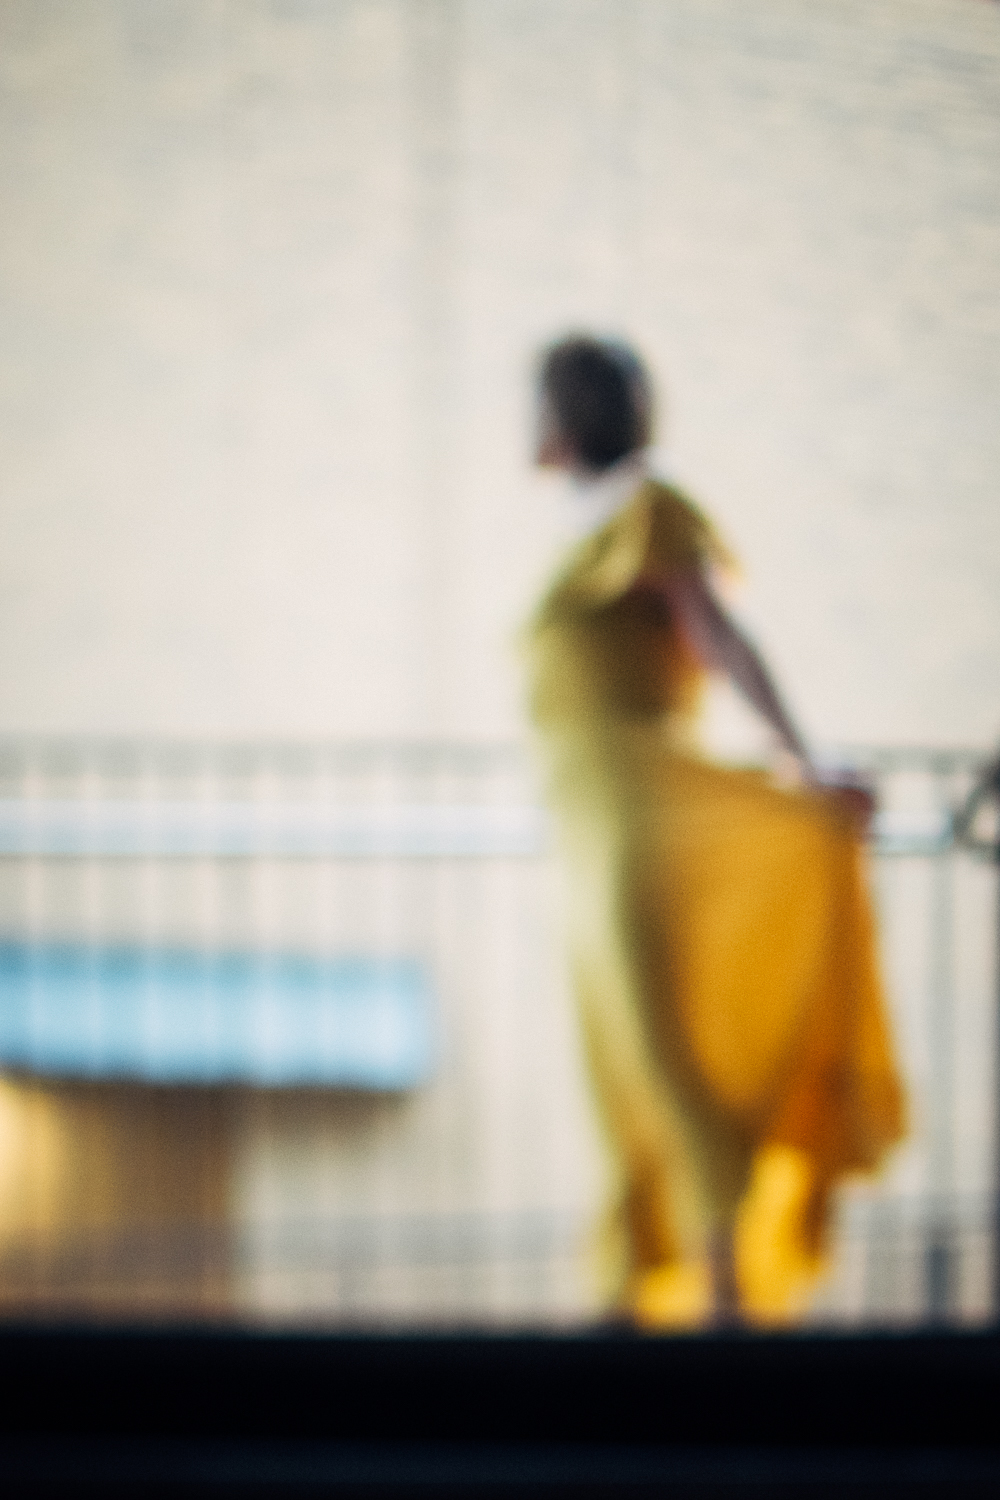 1 Travelling-Mustard-Dress-Cambridge-Photographer-Diana-Hagues.jpg